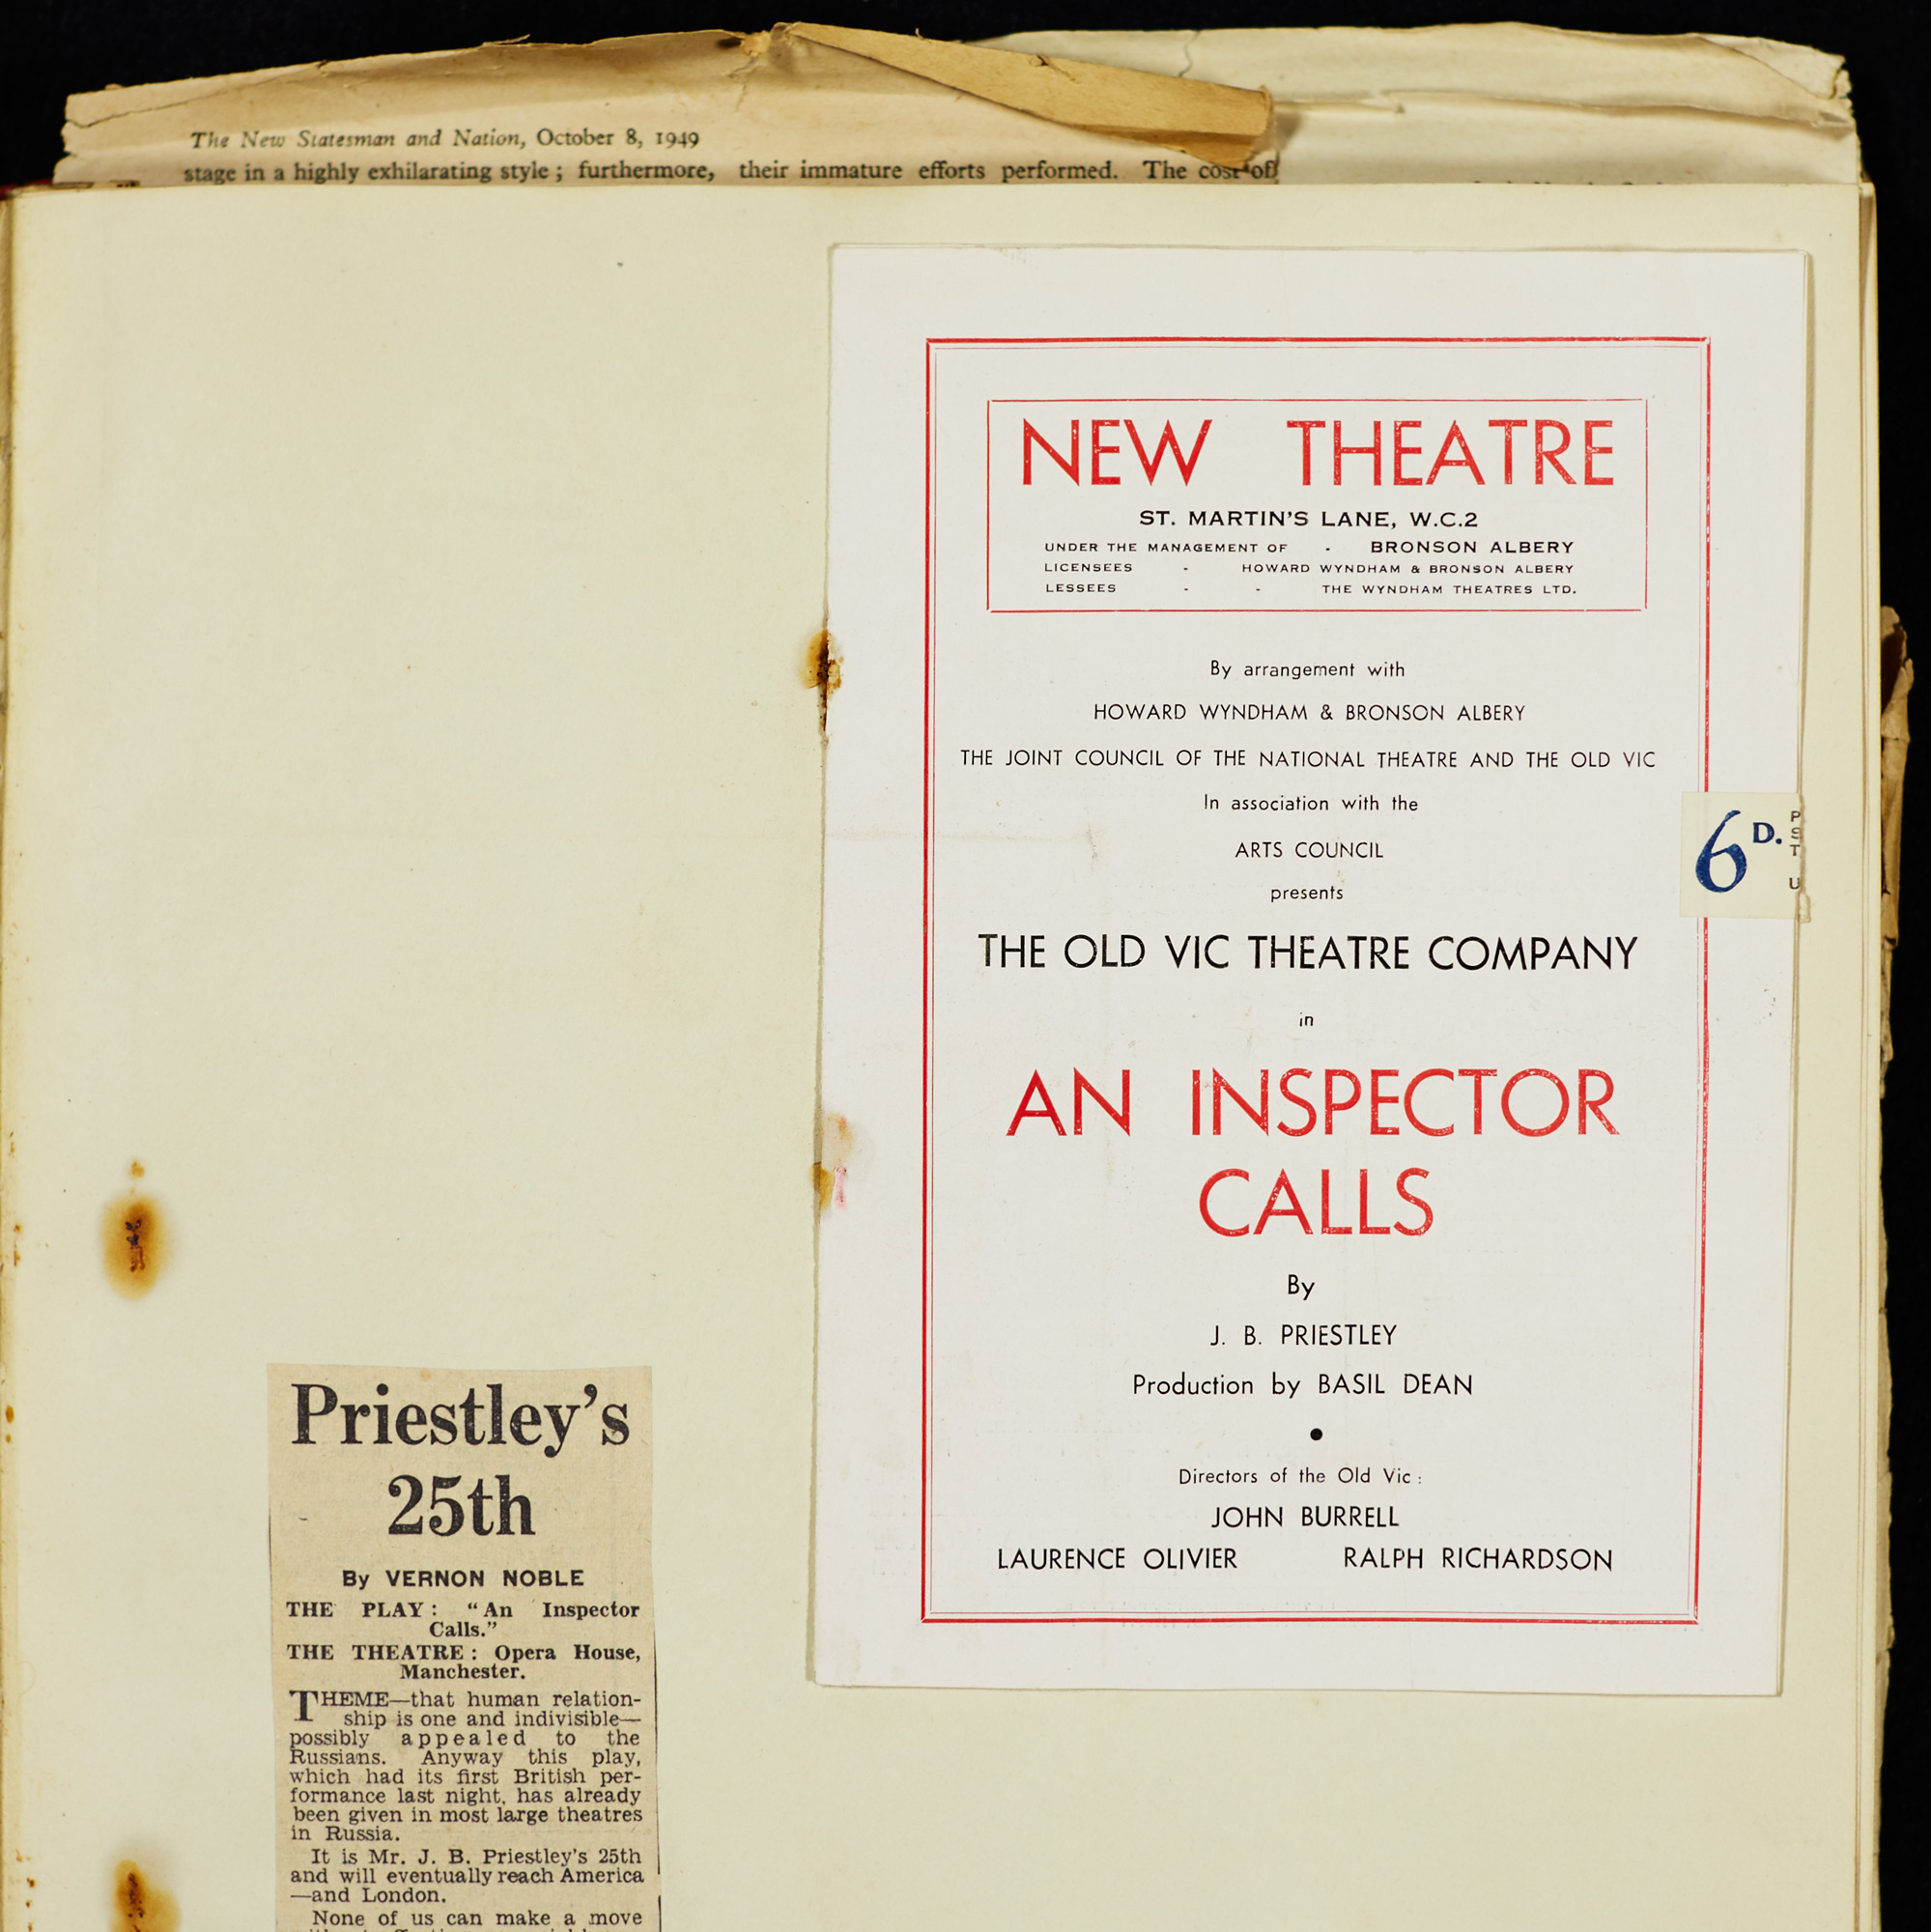 J B Priestley's scrapbook containing programmes and reviews for An Inspector Calls